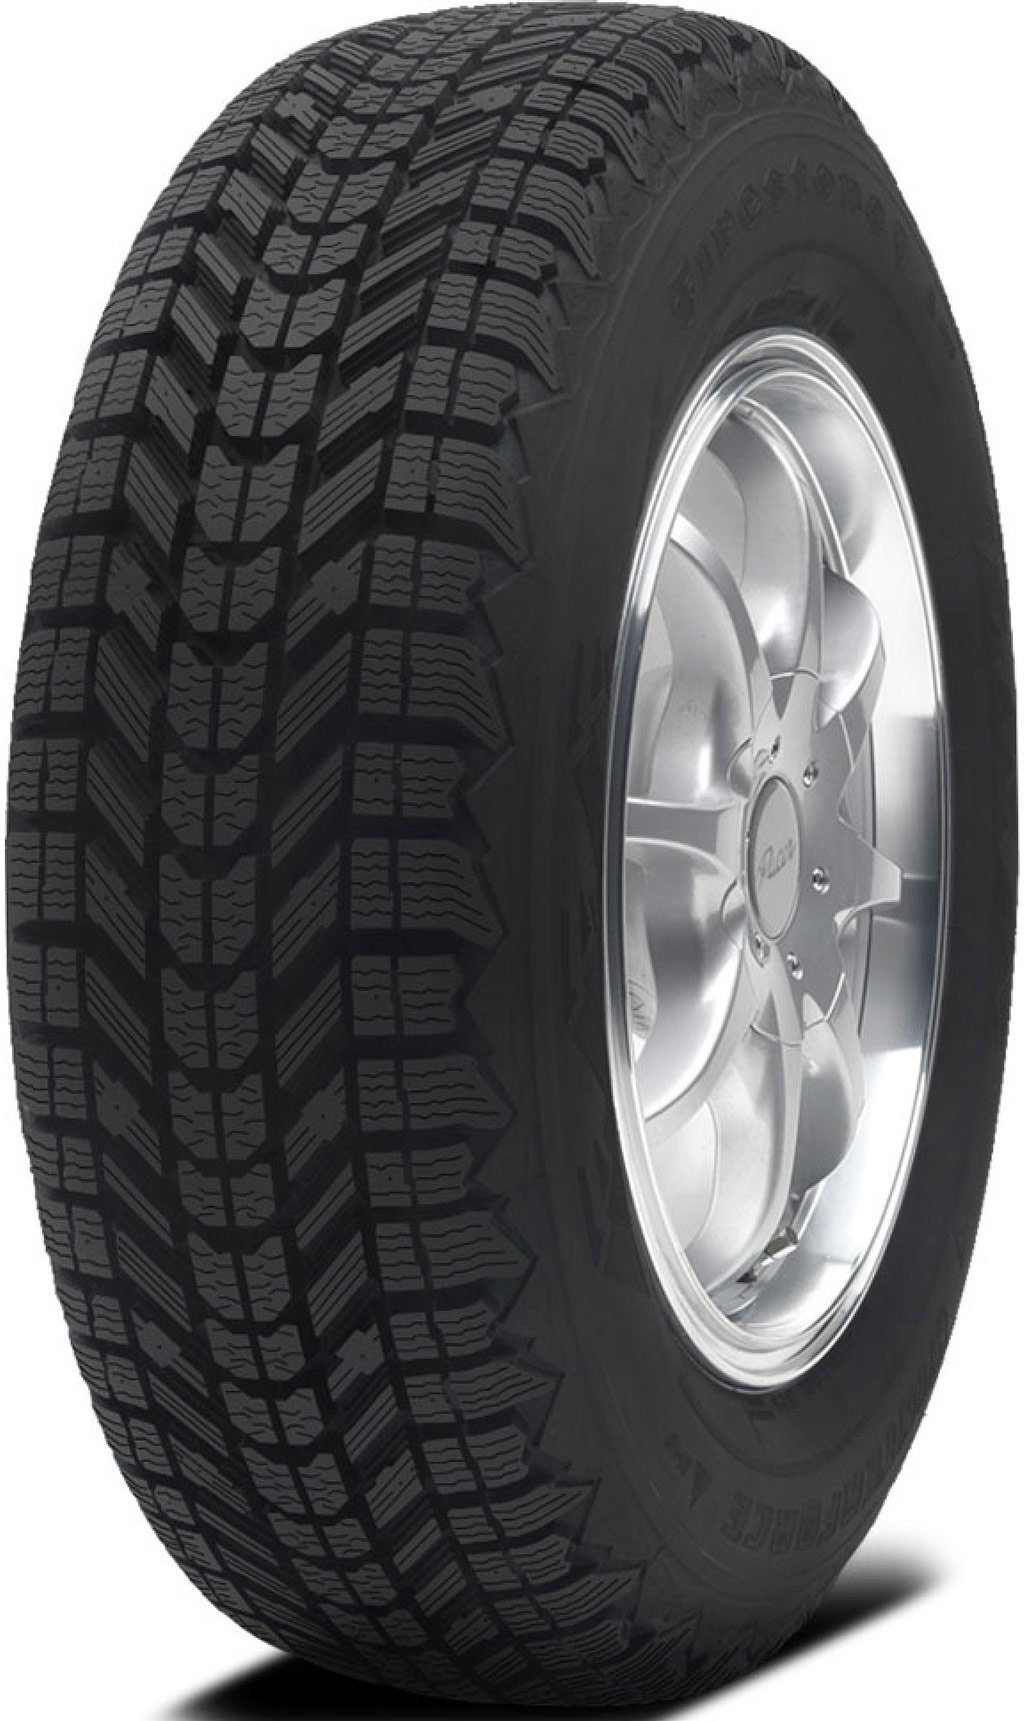 Firestone Winterforce Winter Radial Tire - 225/50R16 91S